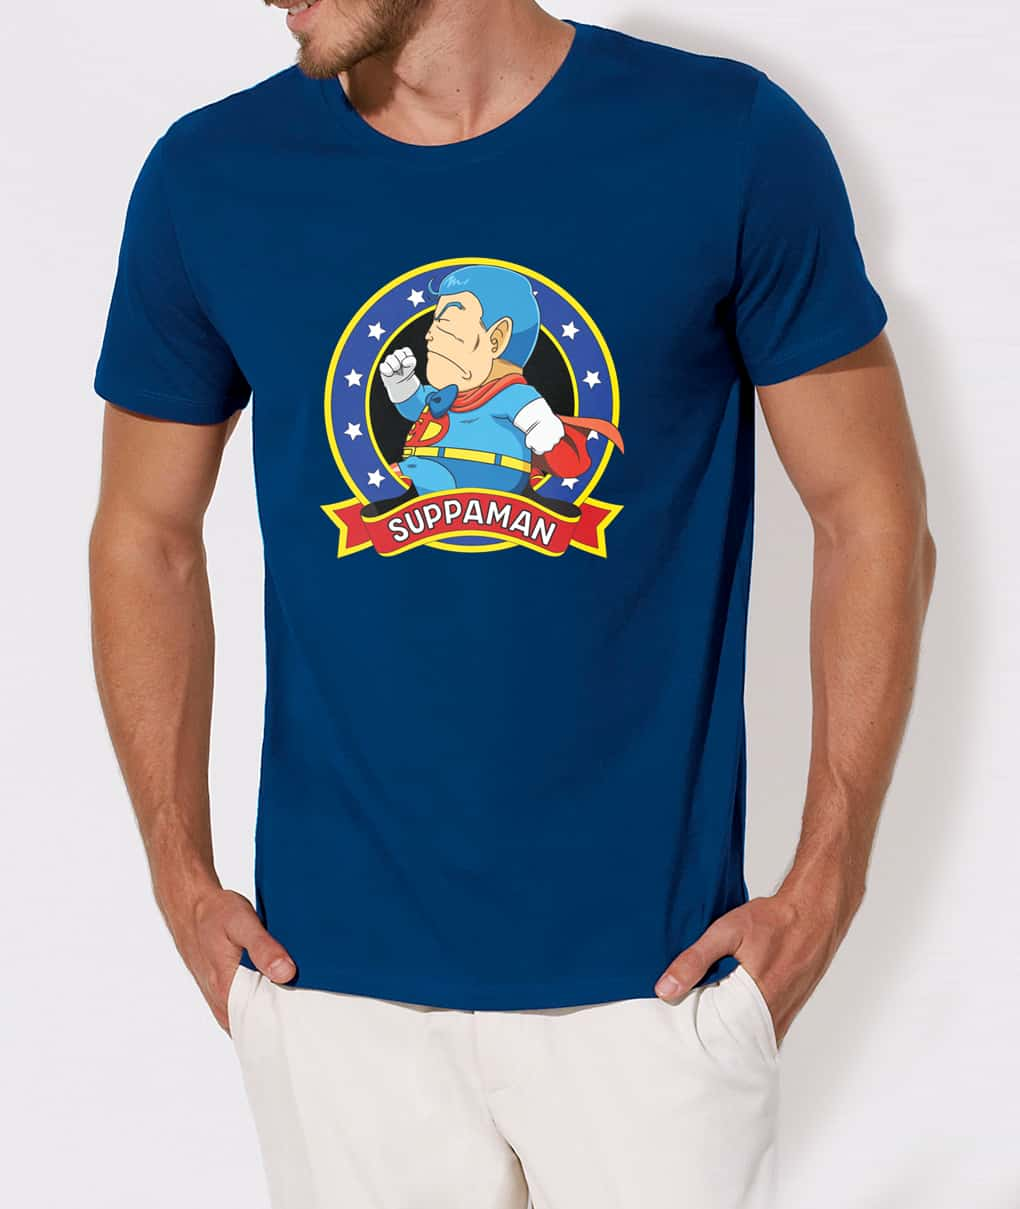 SUPPAMAN CORRIENDO CAMISETA AZUL CHICO TALLA XL DR SLUMP